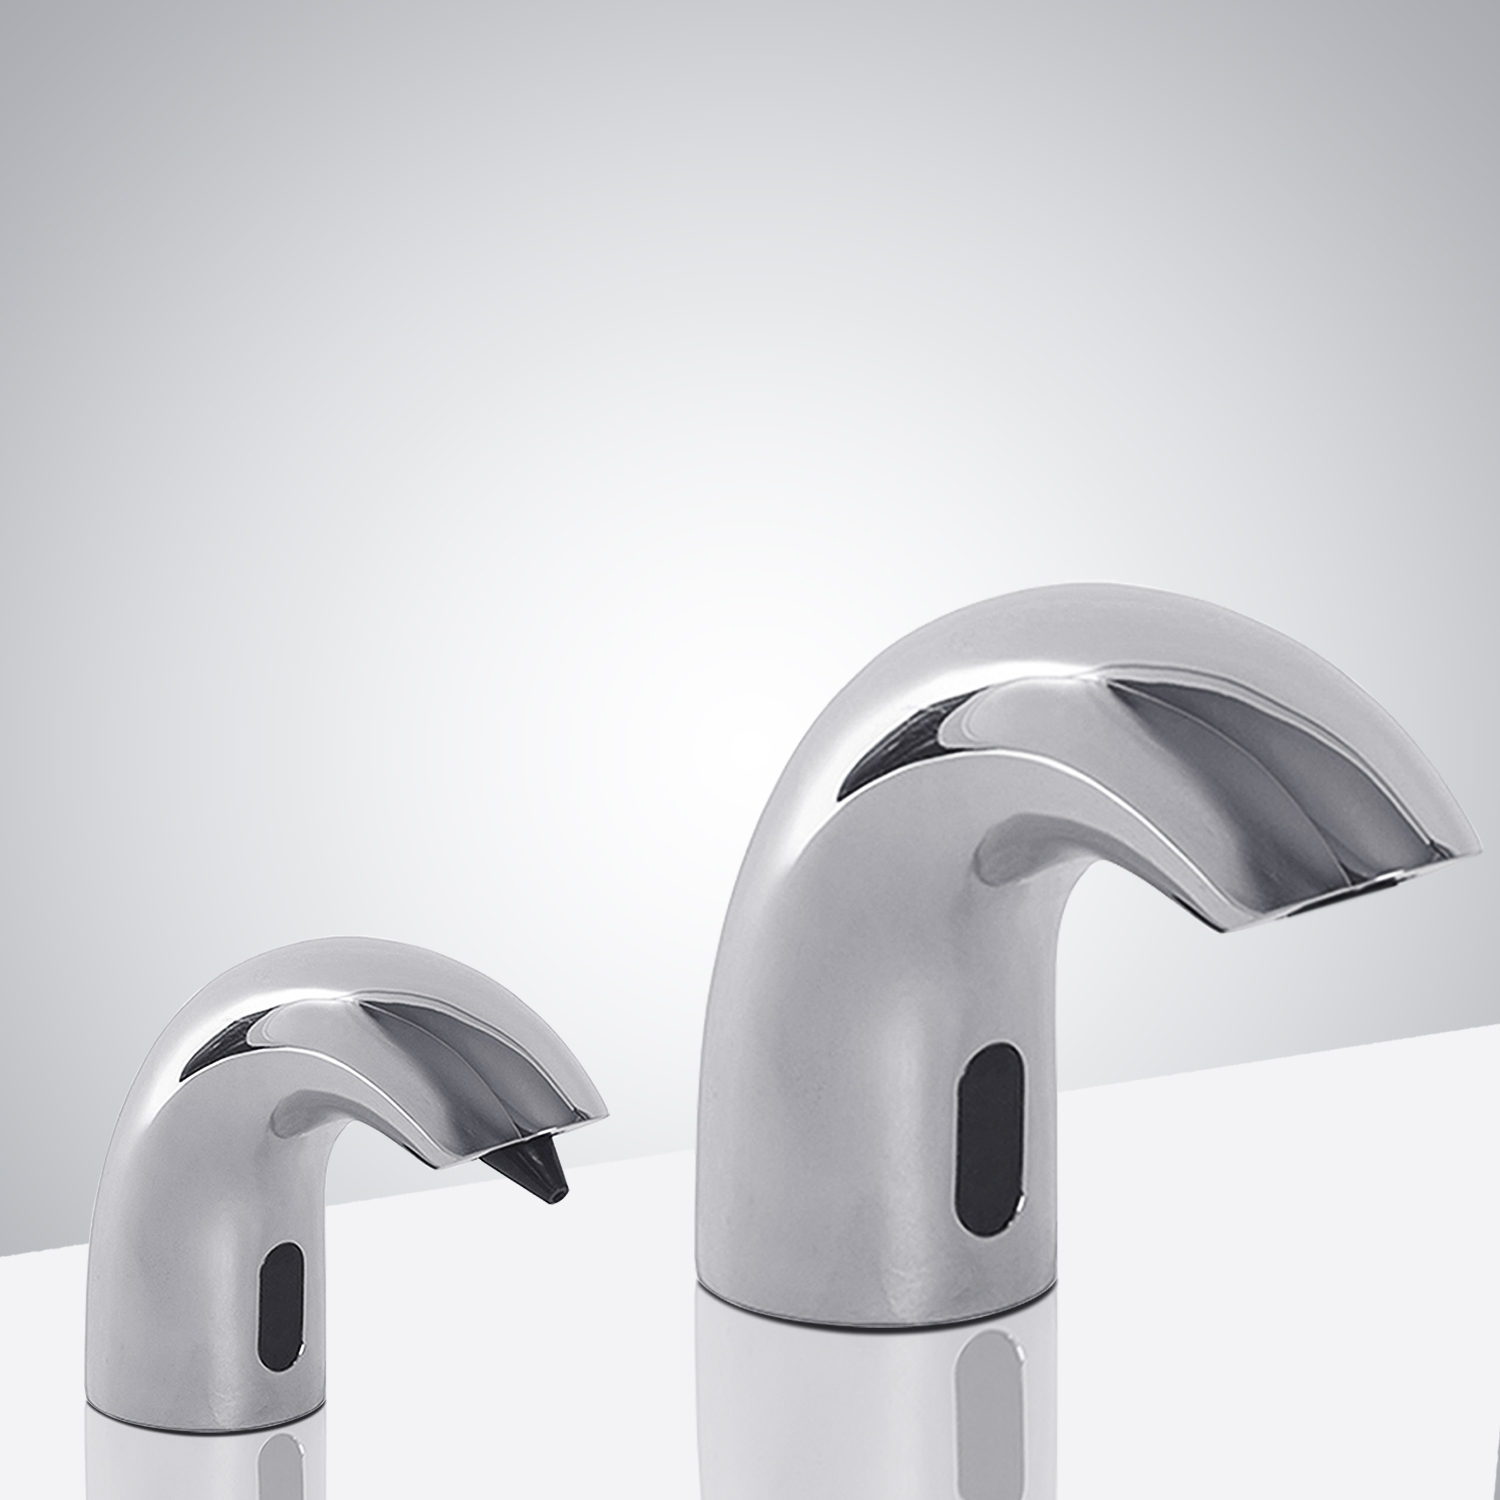 Fontana Peru Chrome Finish Dual Automatic Commercial Sensor Faucet And Soap Dispenser